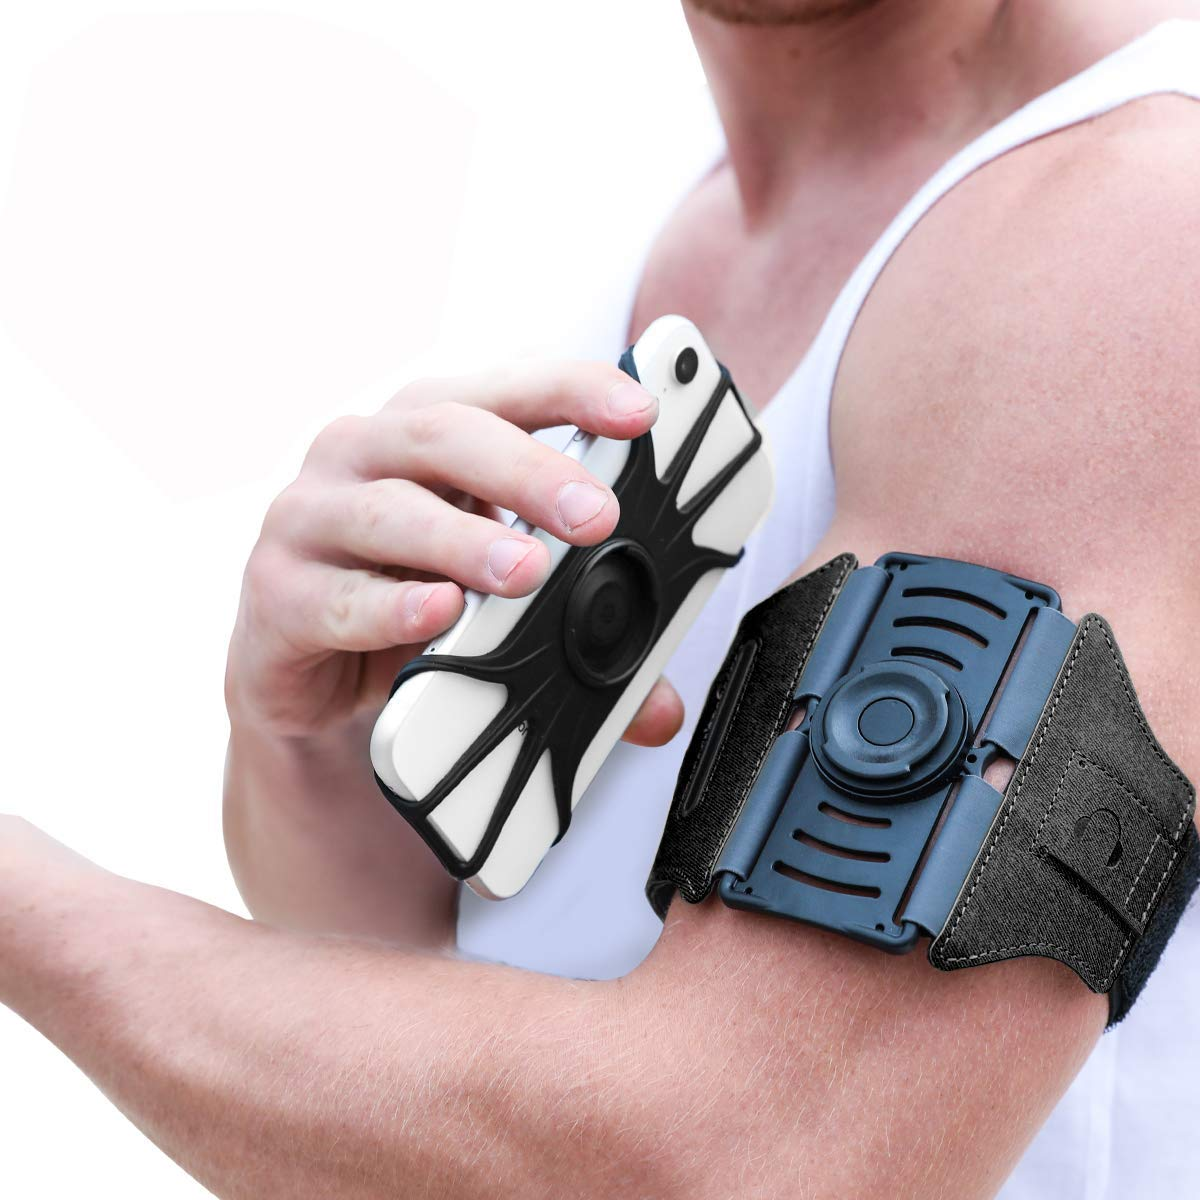 VUP Running Armband [All Screen Friendly, Detachable & 360°Rotatable] for iPhone Xs Max/Xs/XR/8 Plus/7 Plus/6s Plus/6, Galaxy S10 Plus/ S9 Plus/ S8/ A8 Plus, Note 4/5/8/9, Google Pixel 3/2 XL-Black by VUP